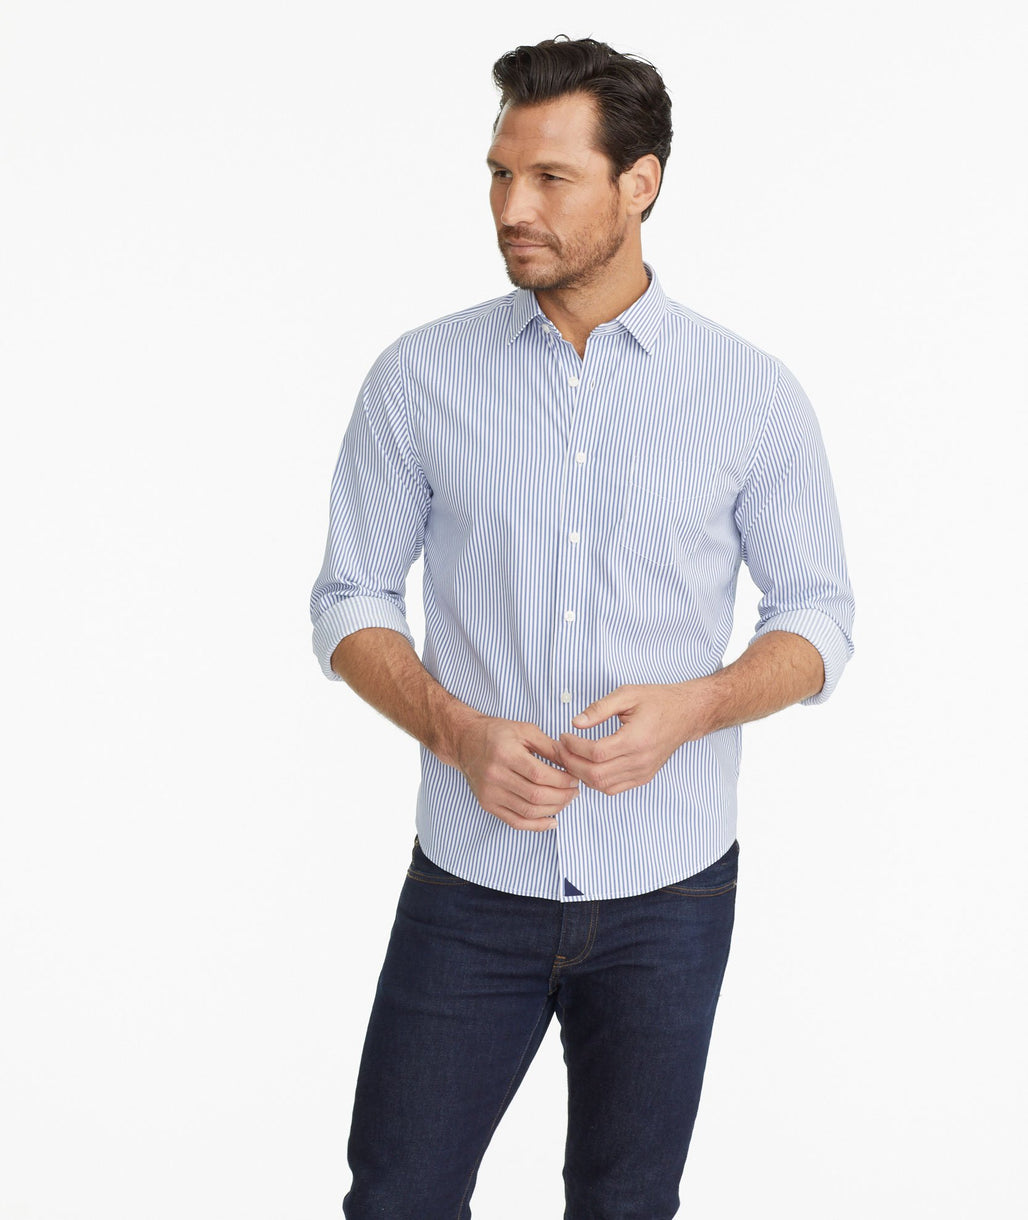 Model wearing a Blue Wrinkle-Free Performance Terzolo Shirt